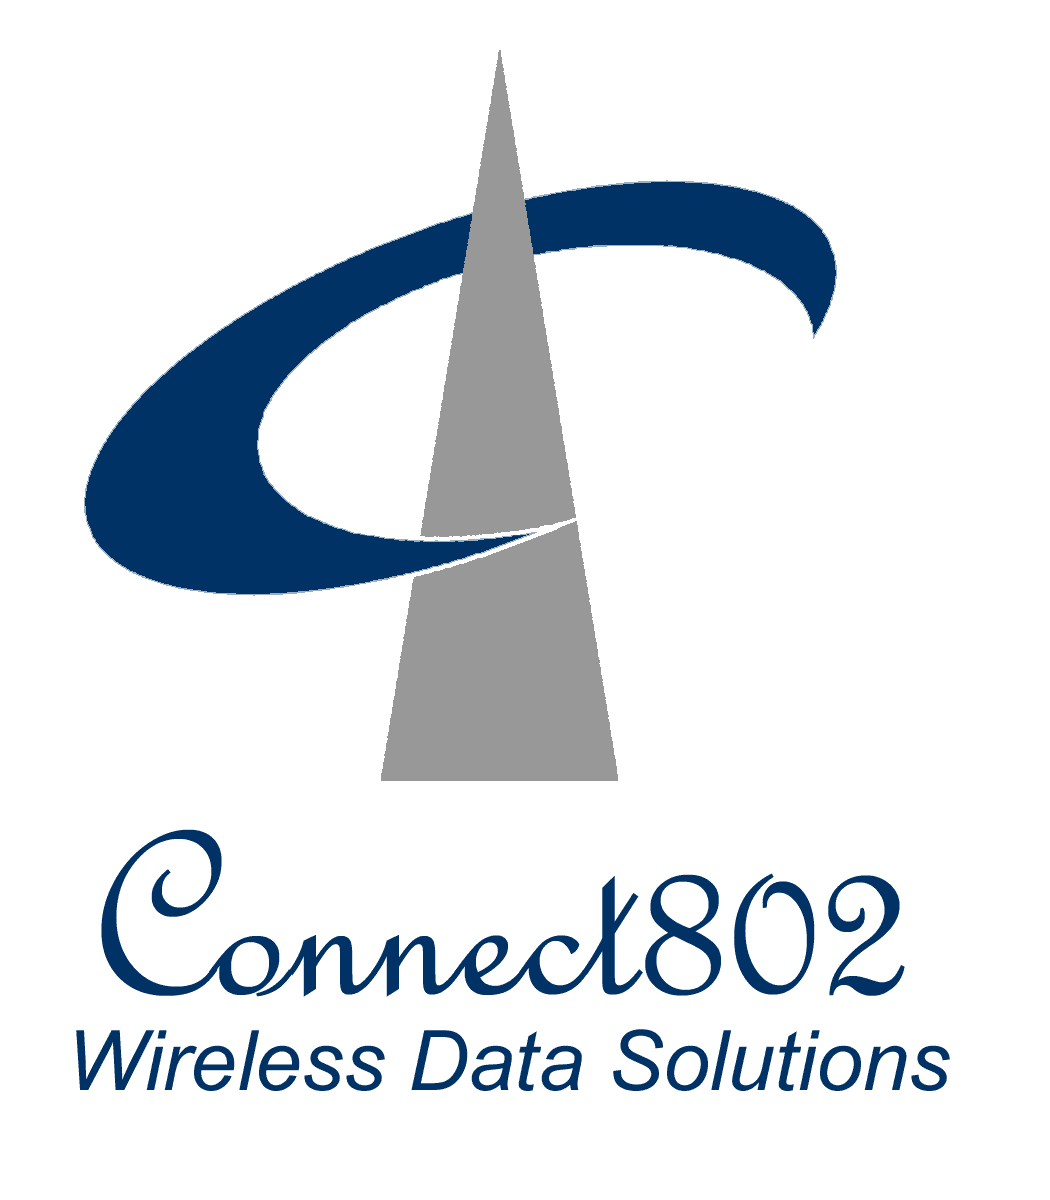 Connect802 - 2 4 and 5 GHz WiFi Channel Discussion